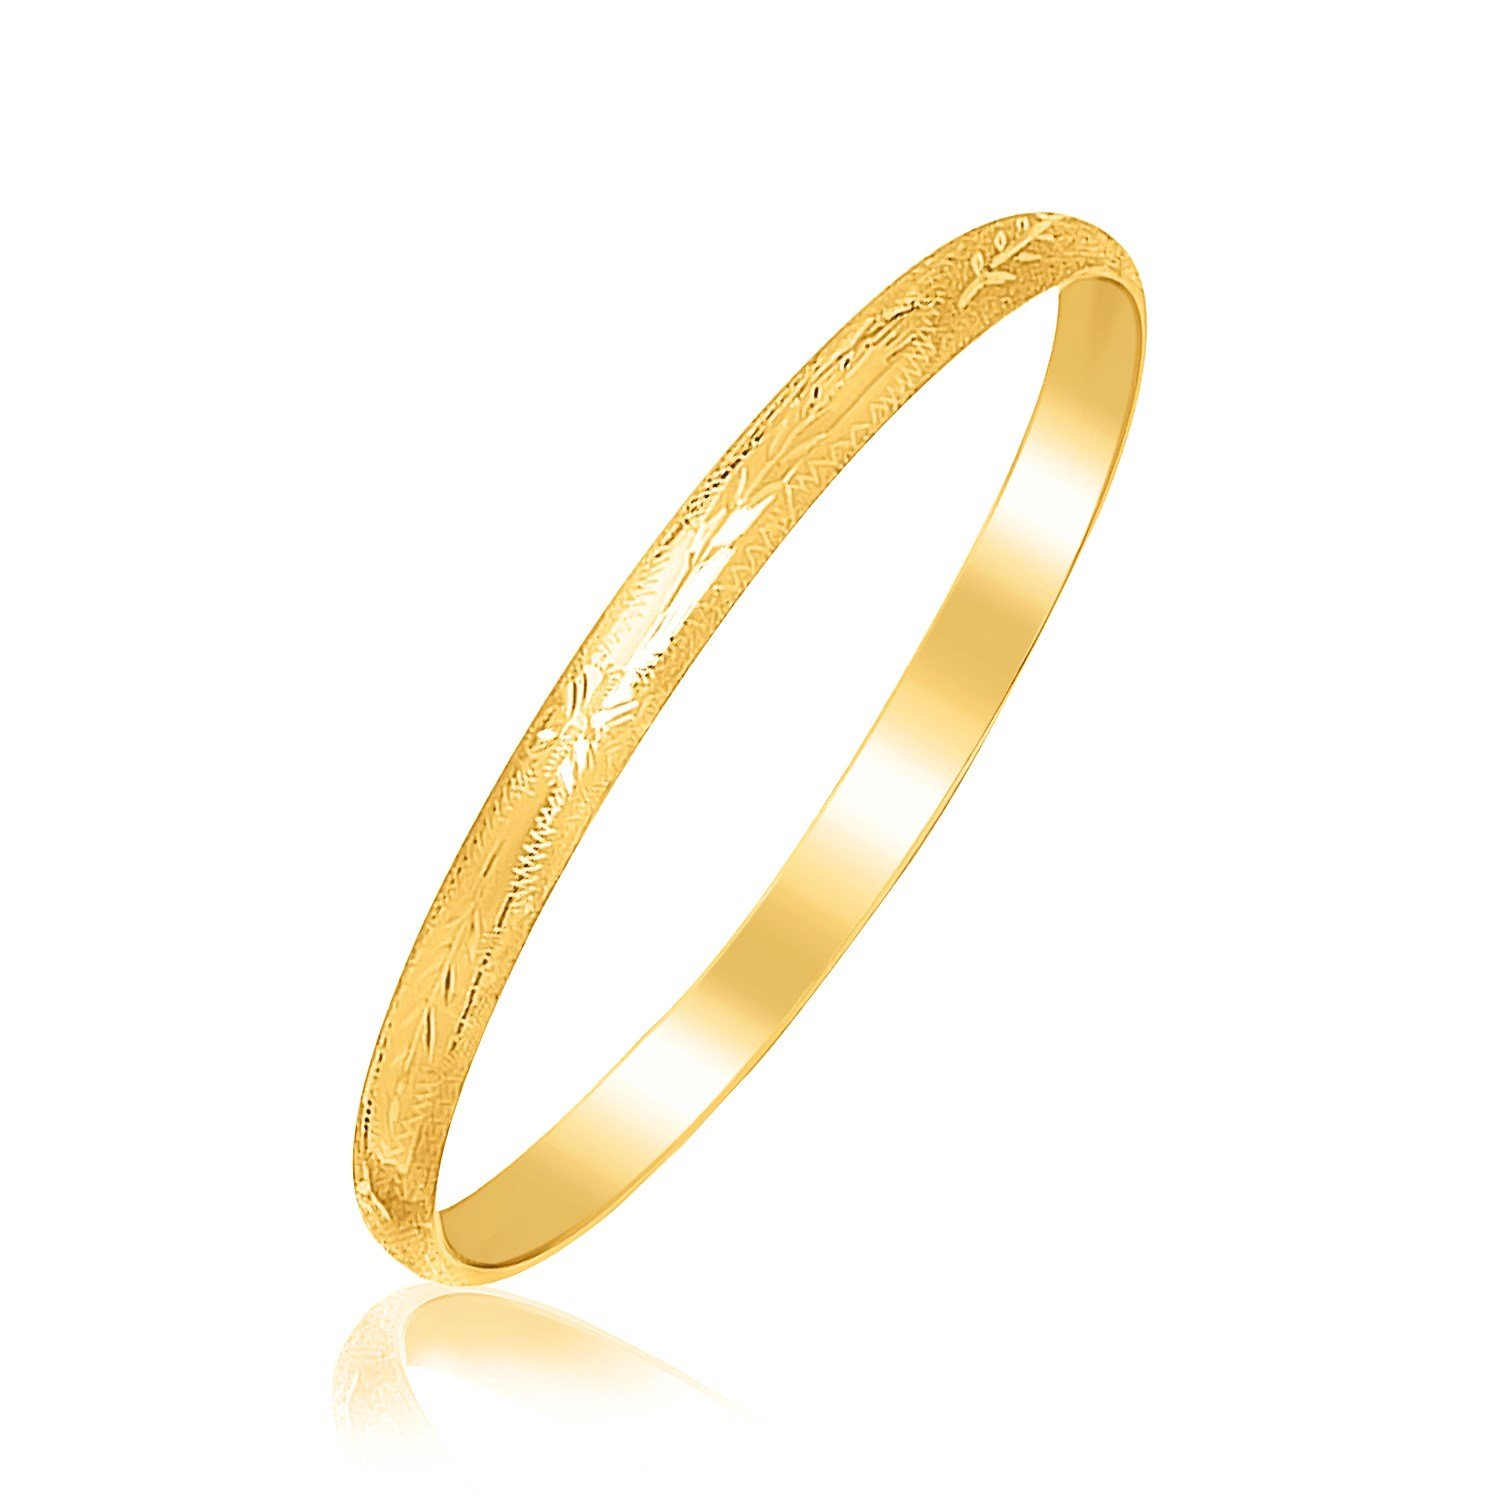 14K Yellow Gold Childrens Bangle with Floral Diamond Cuts